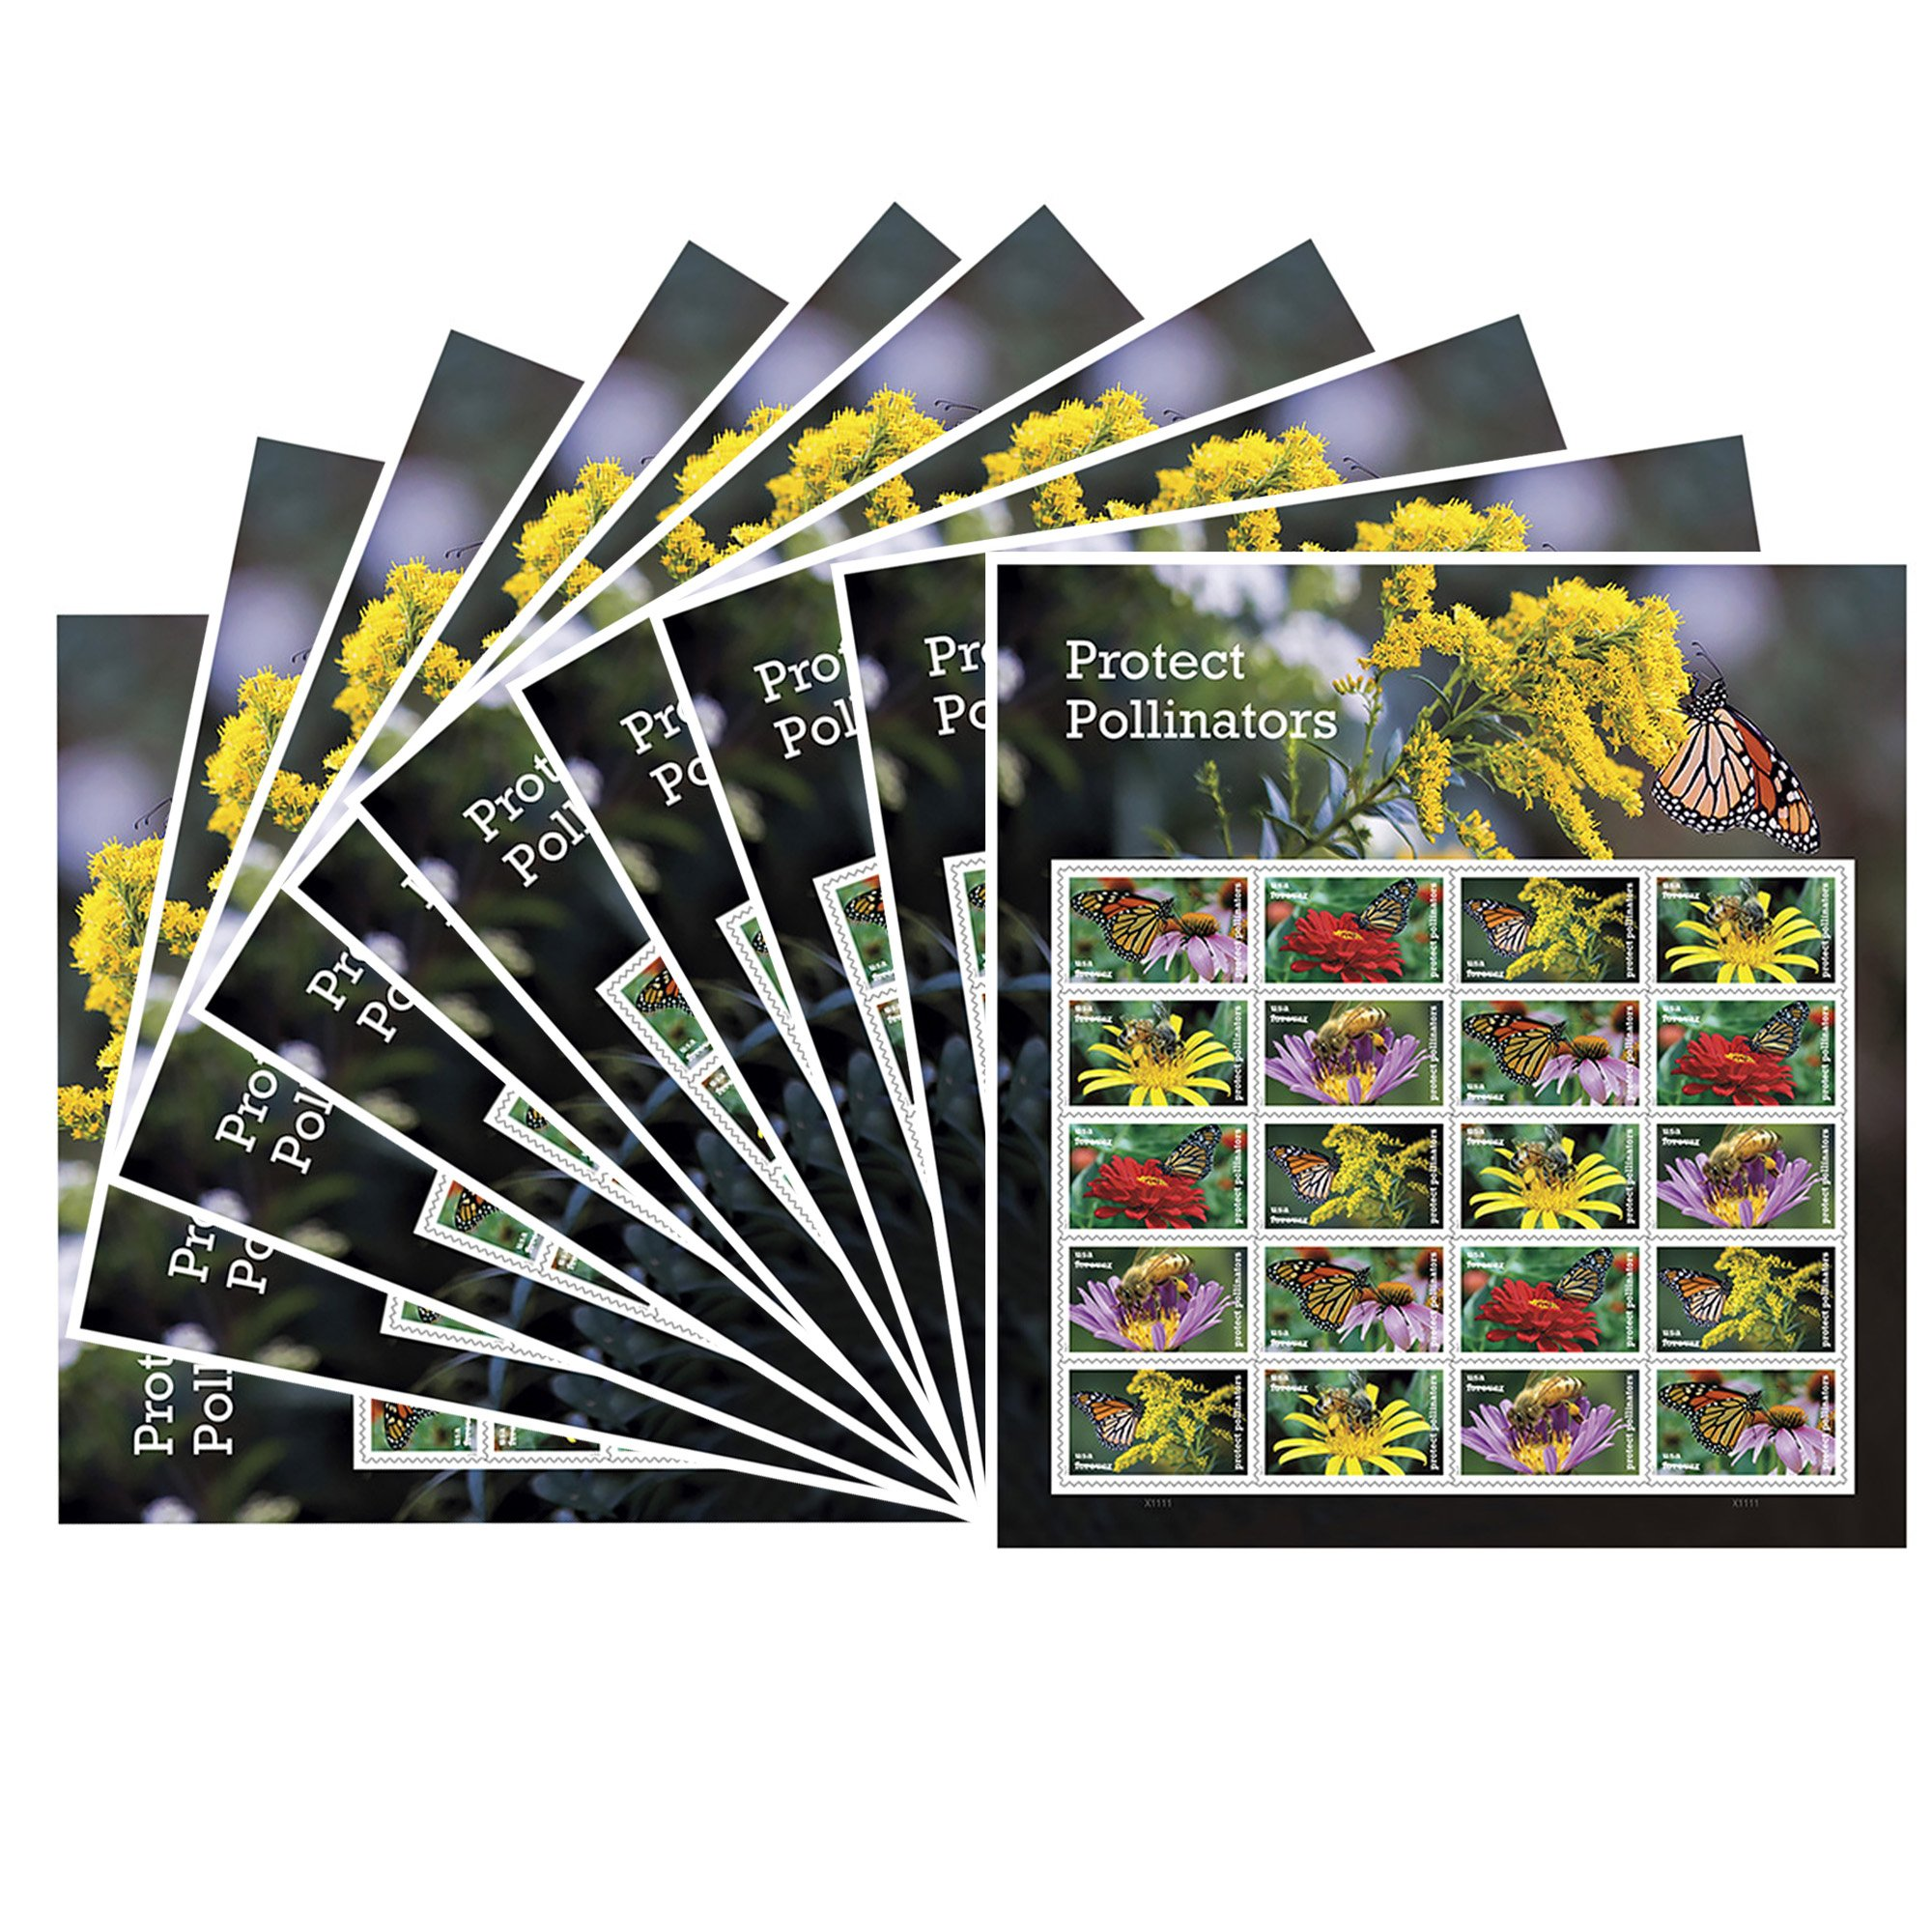 Protect Pollinators 10 Sheets of 20 Forever USPS First Class one Ounce Postage Stamps Environment Wedding Party